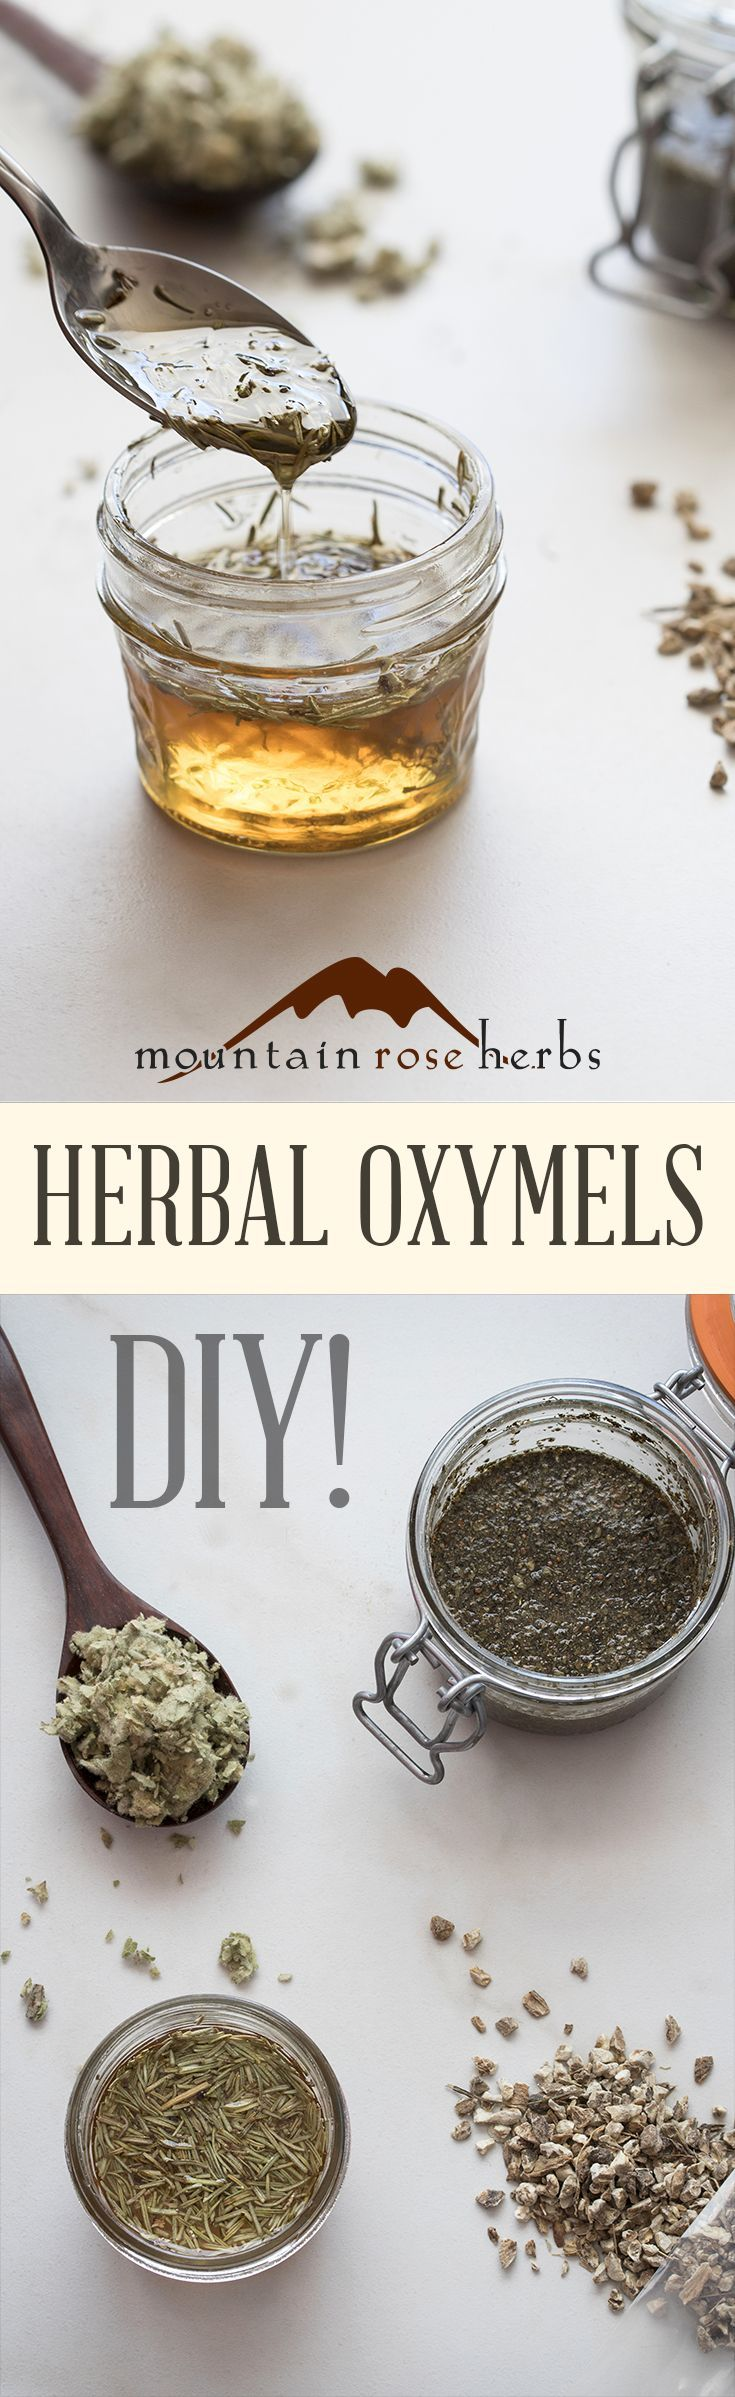 Vinegar, herbs, and honey recipes from Mountain Rose Herbs.